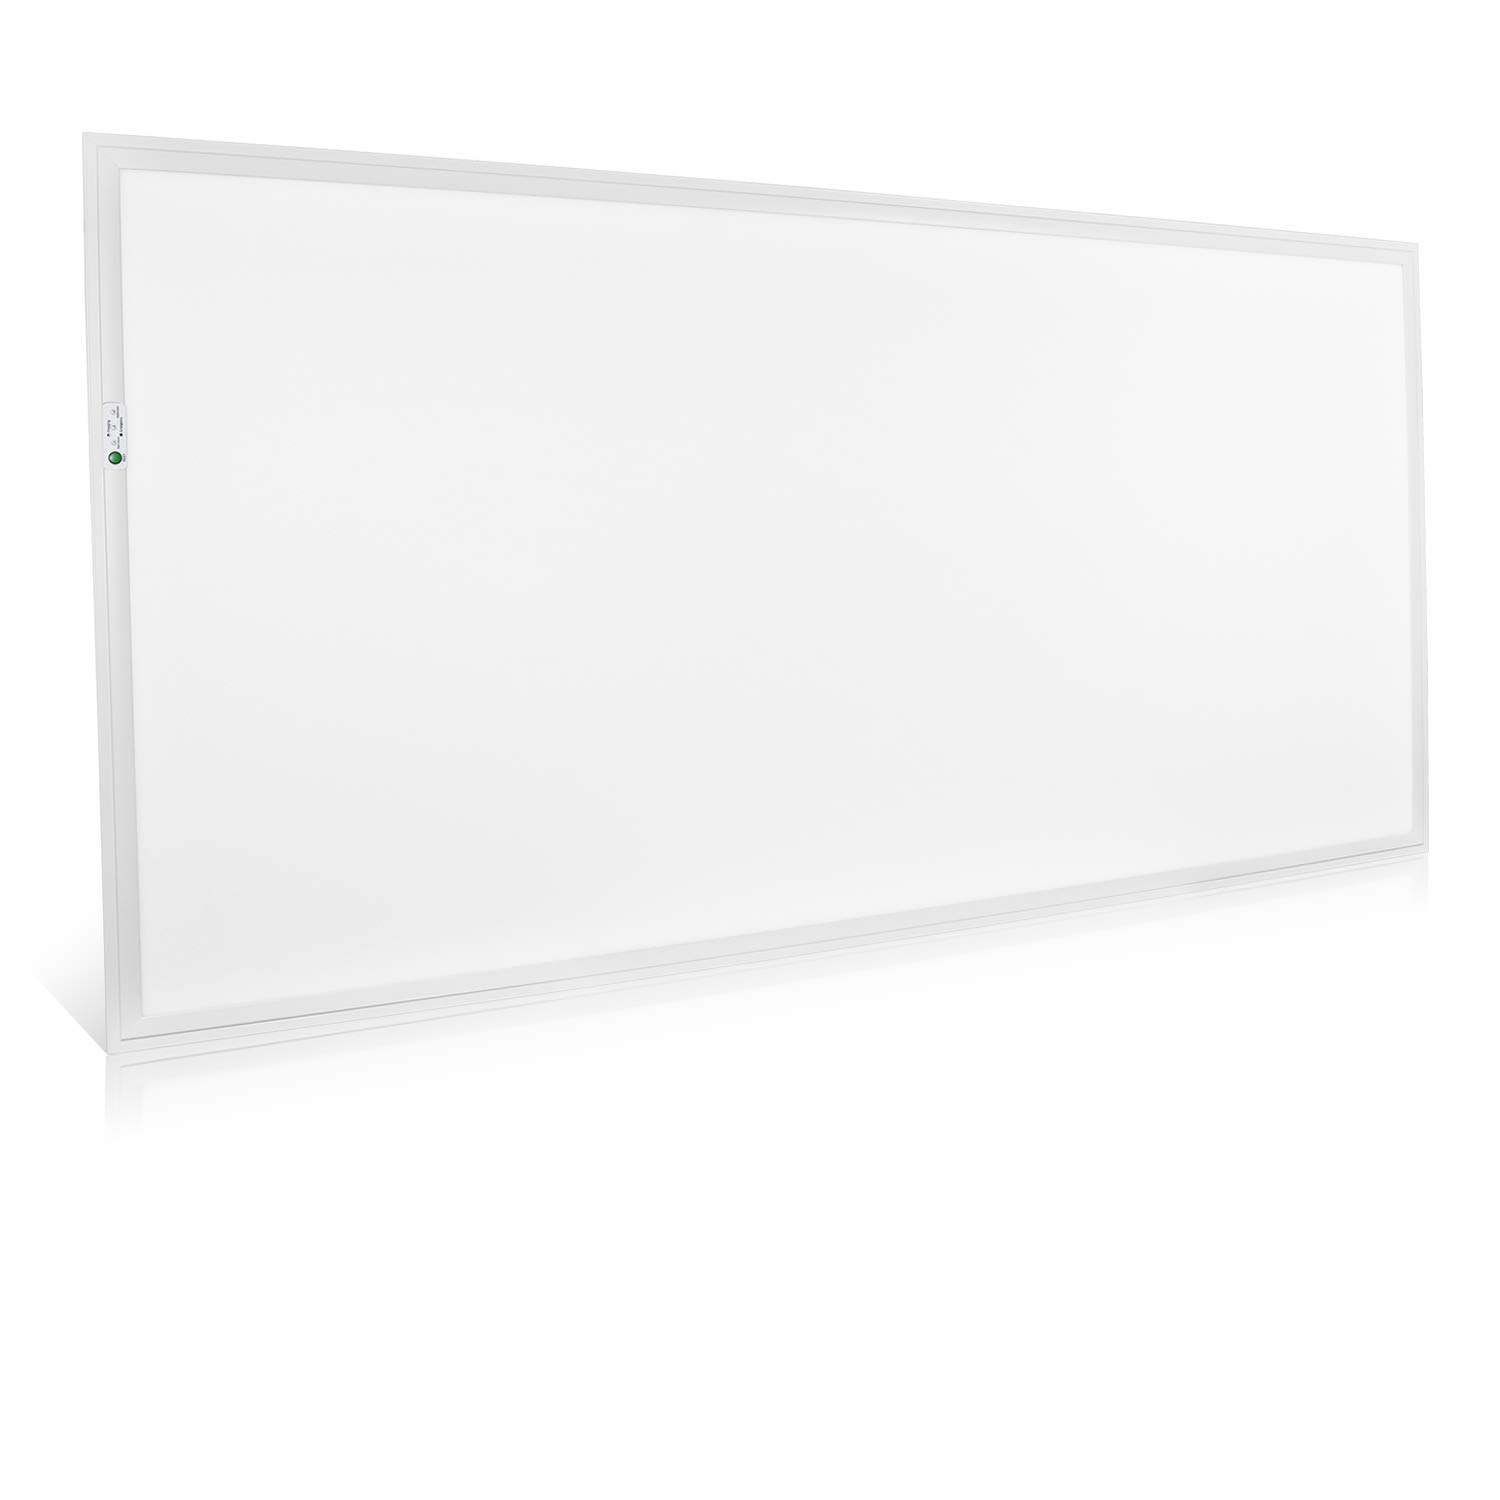 Luxrite 2x4 LED Flat Panel Light with Emergency Battery Backup, 60W 5000K Bright White, 0-10V Dimmable, 6960 Lumens, LED Drop Ceiling Lights, 100-277V, DLC and UL Listed, Ultra Thin Edge-Lit